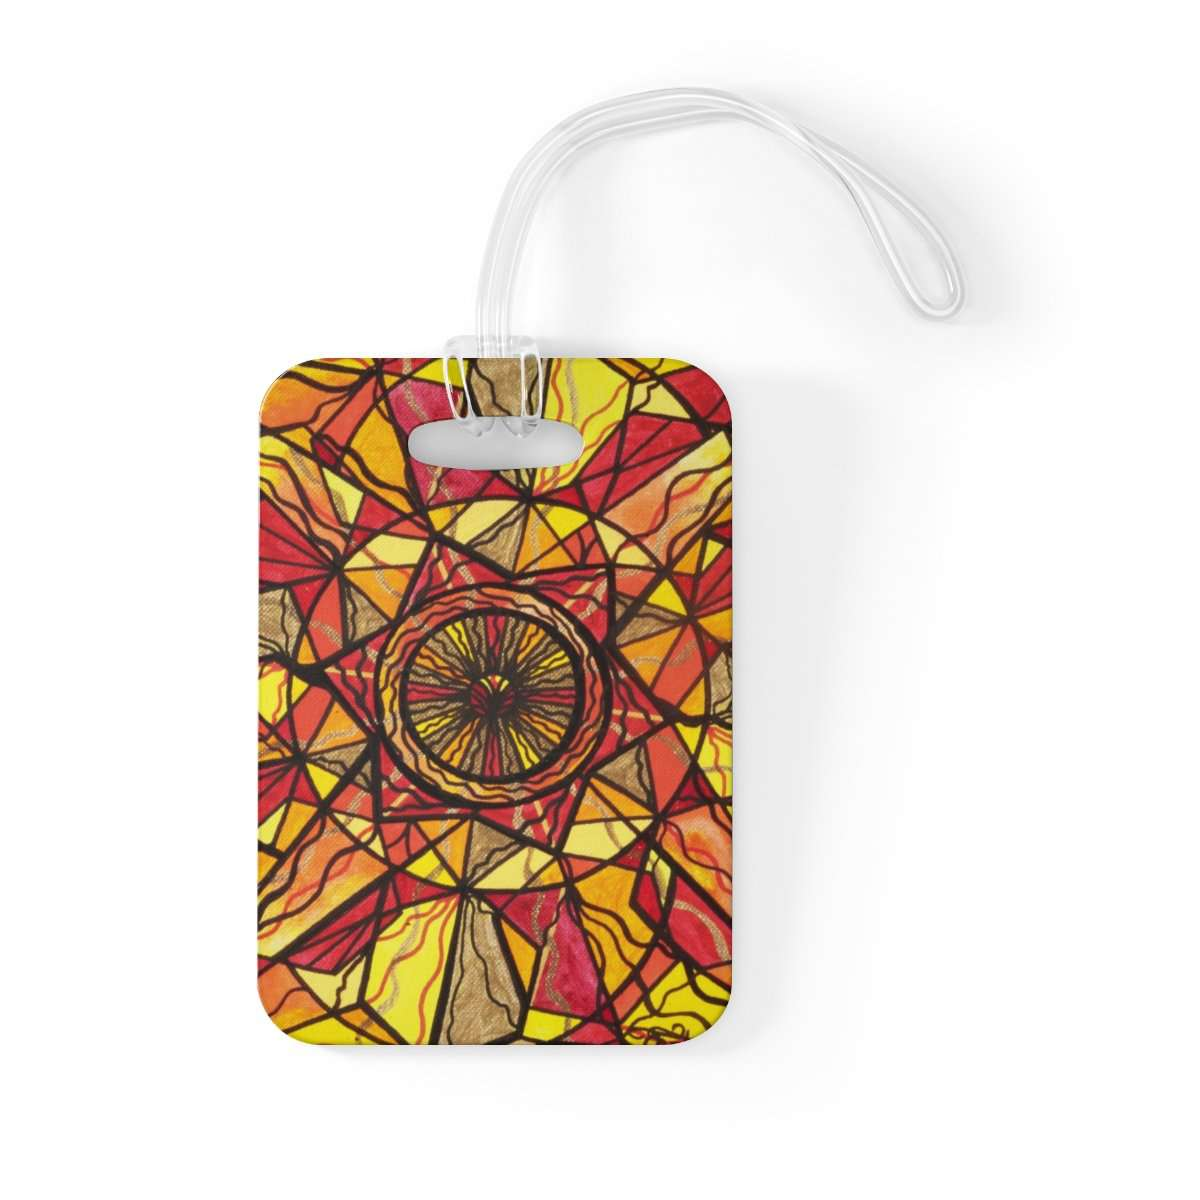 Empowerment - Bag Tag